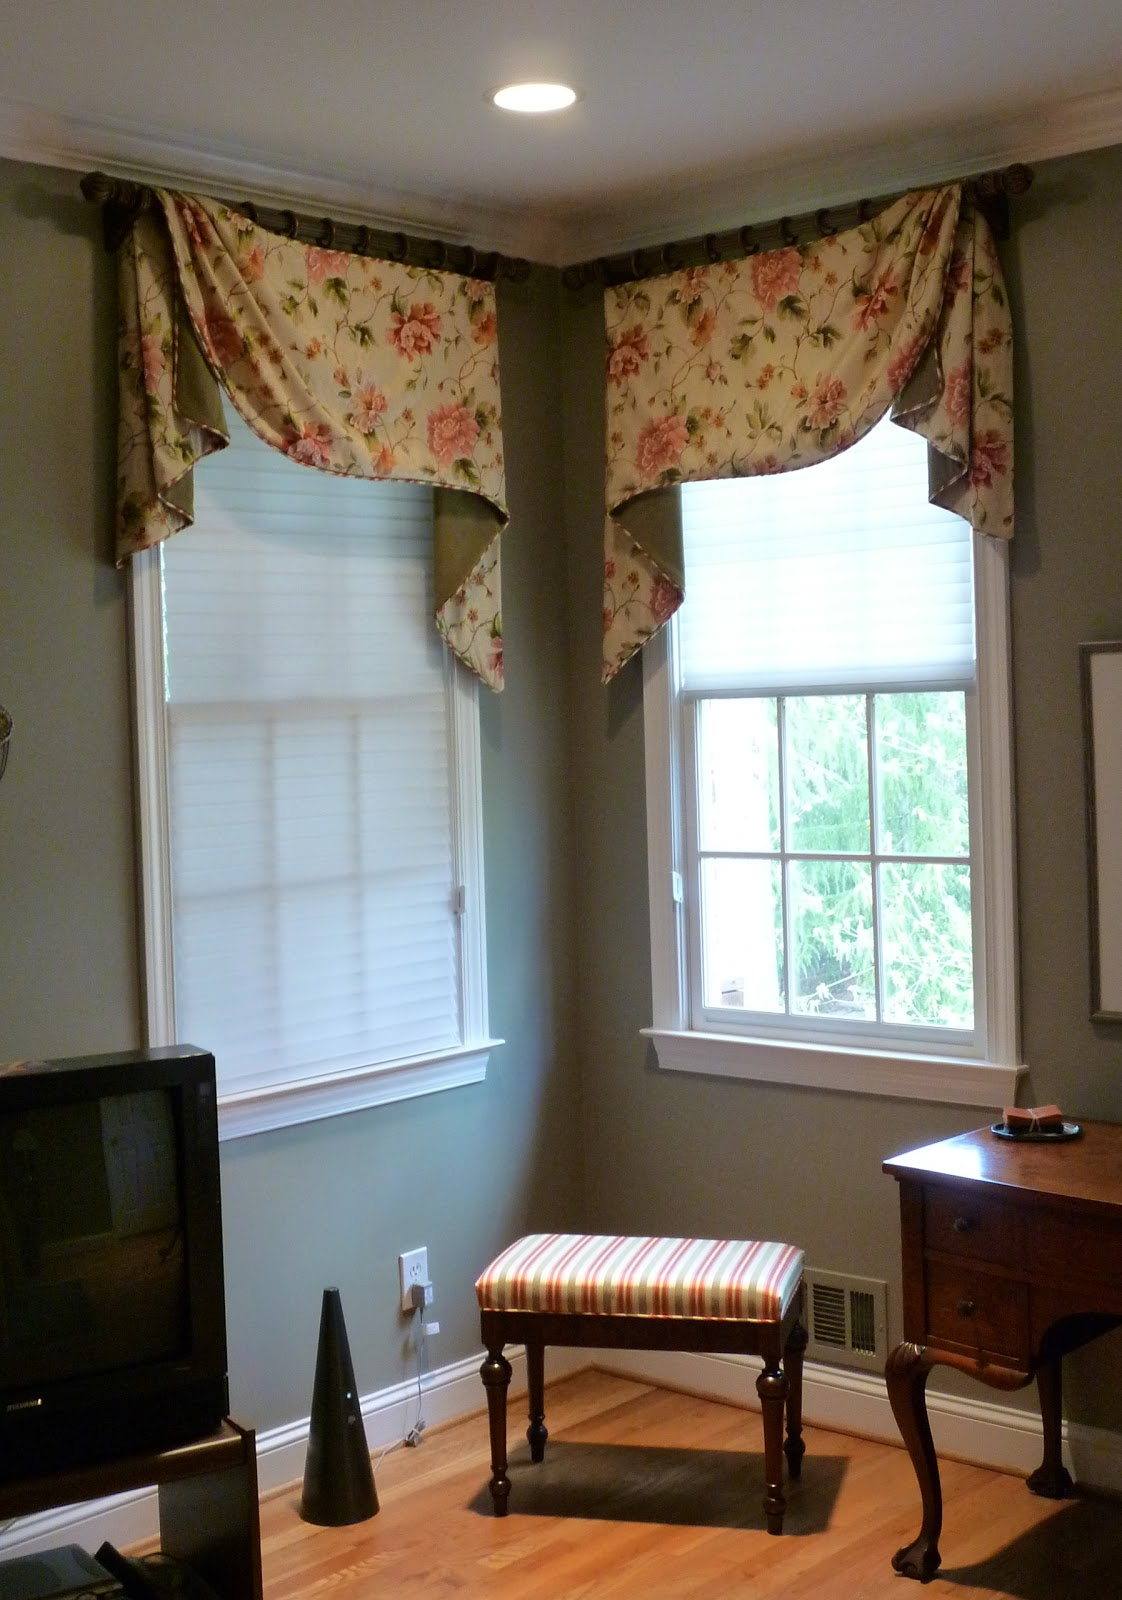 Youngblood interiors corner window treatments for the for Window treatments bedroom ideas